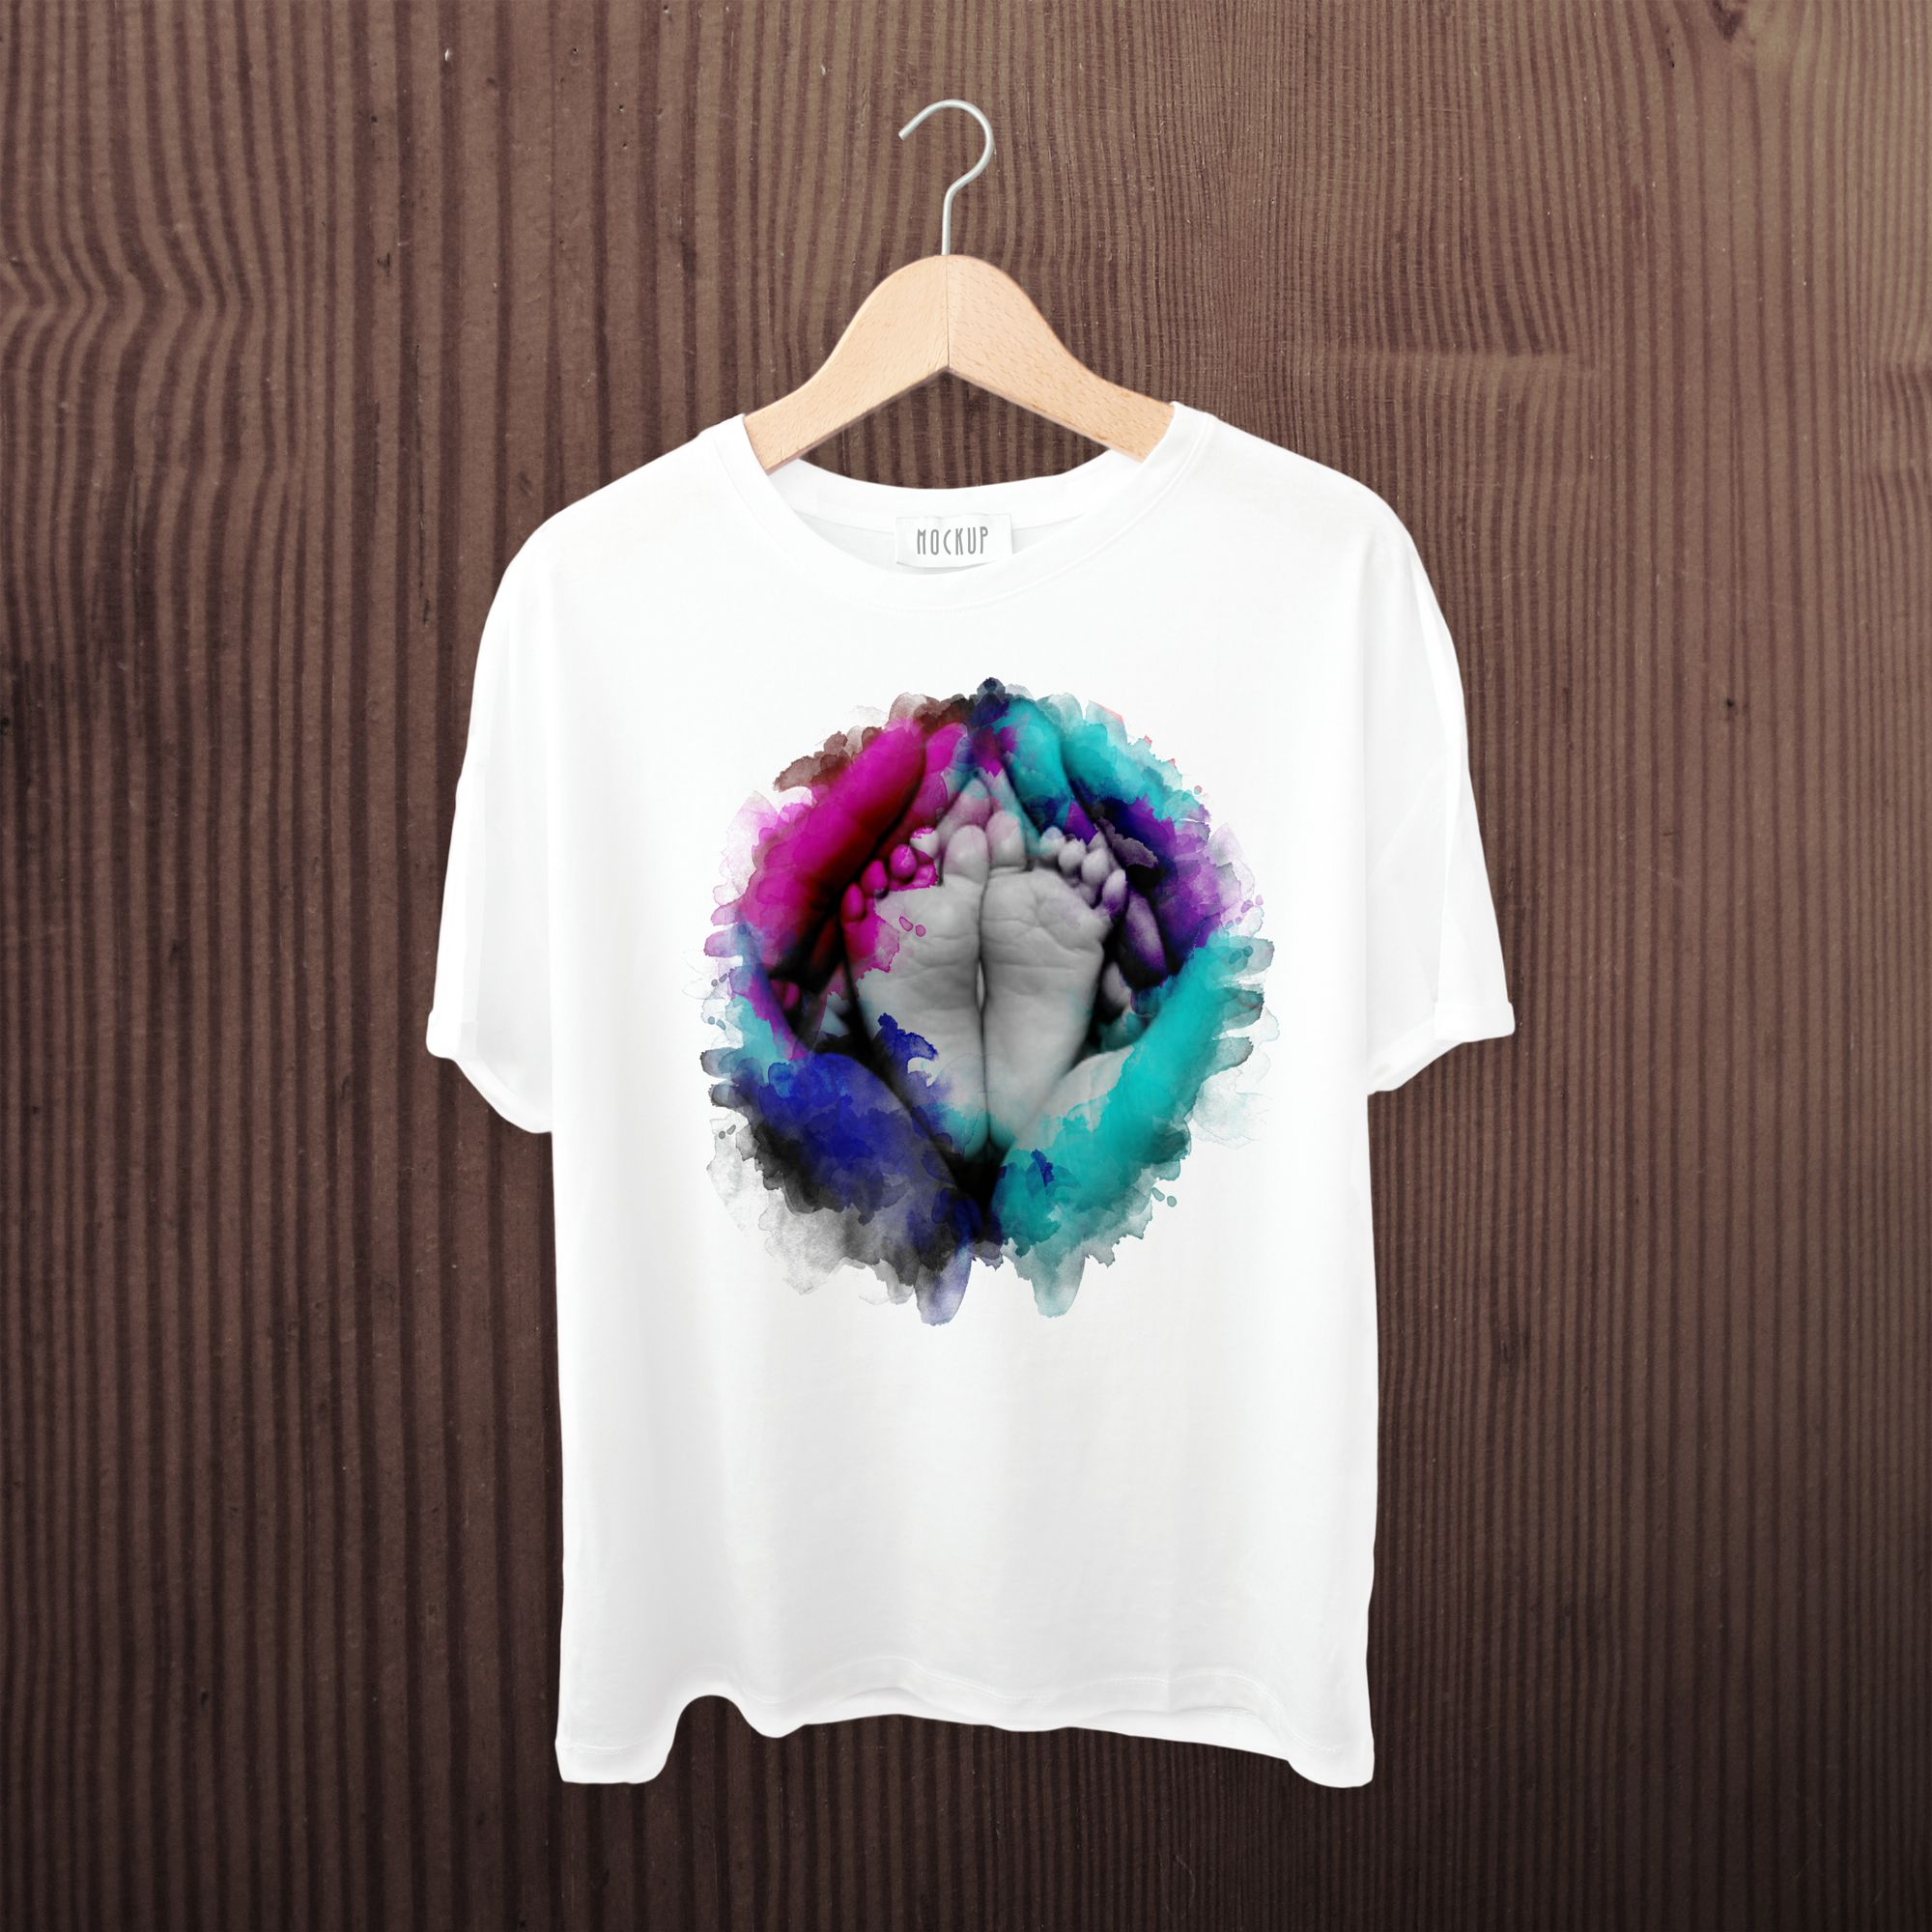 Tshirt Watercolor Design Trendy Merchendise Teespring Amazon